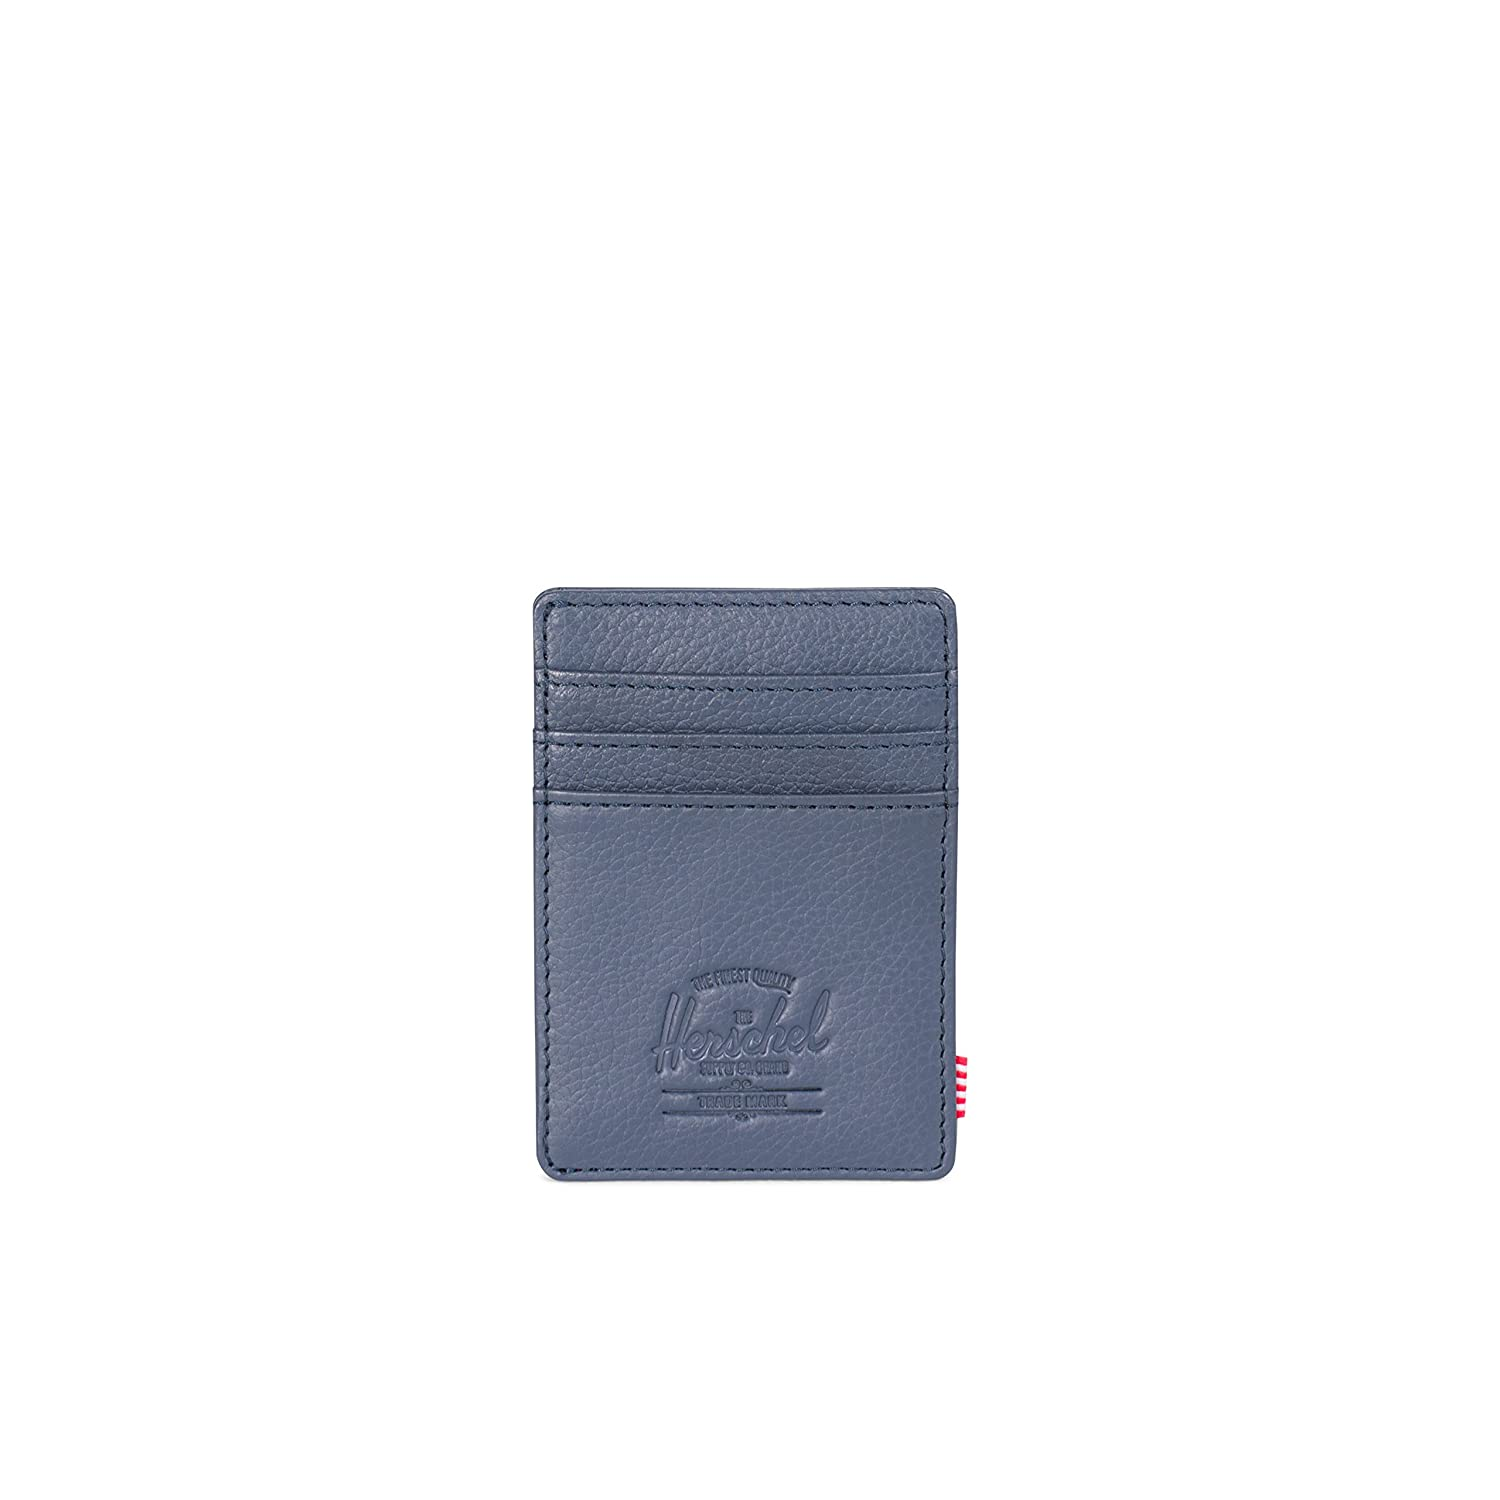 Herschel Supply Co. Men's Raven Leather Rfid Wallet Navy Pebbled Leather RFID One Size 10366-00776-OS